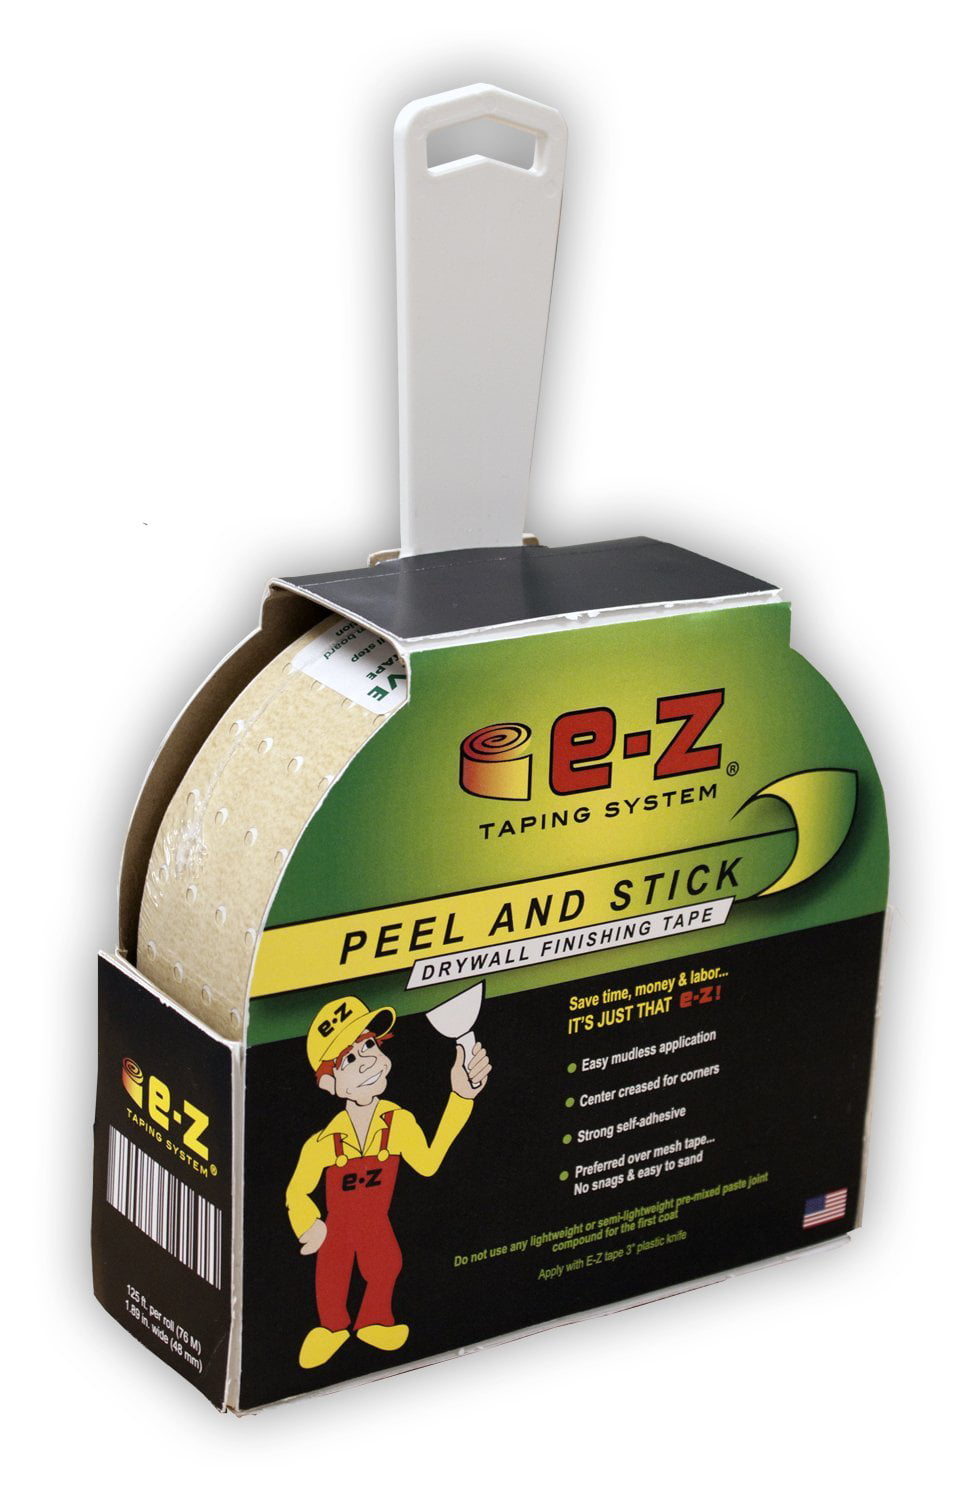 E-Z Tapping 99125 Peel & Stick Drywall Finishing Tape, Green, 125' by E-Z Taping System